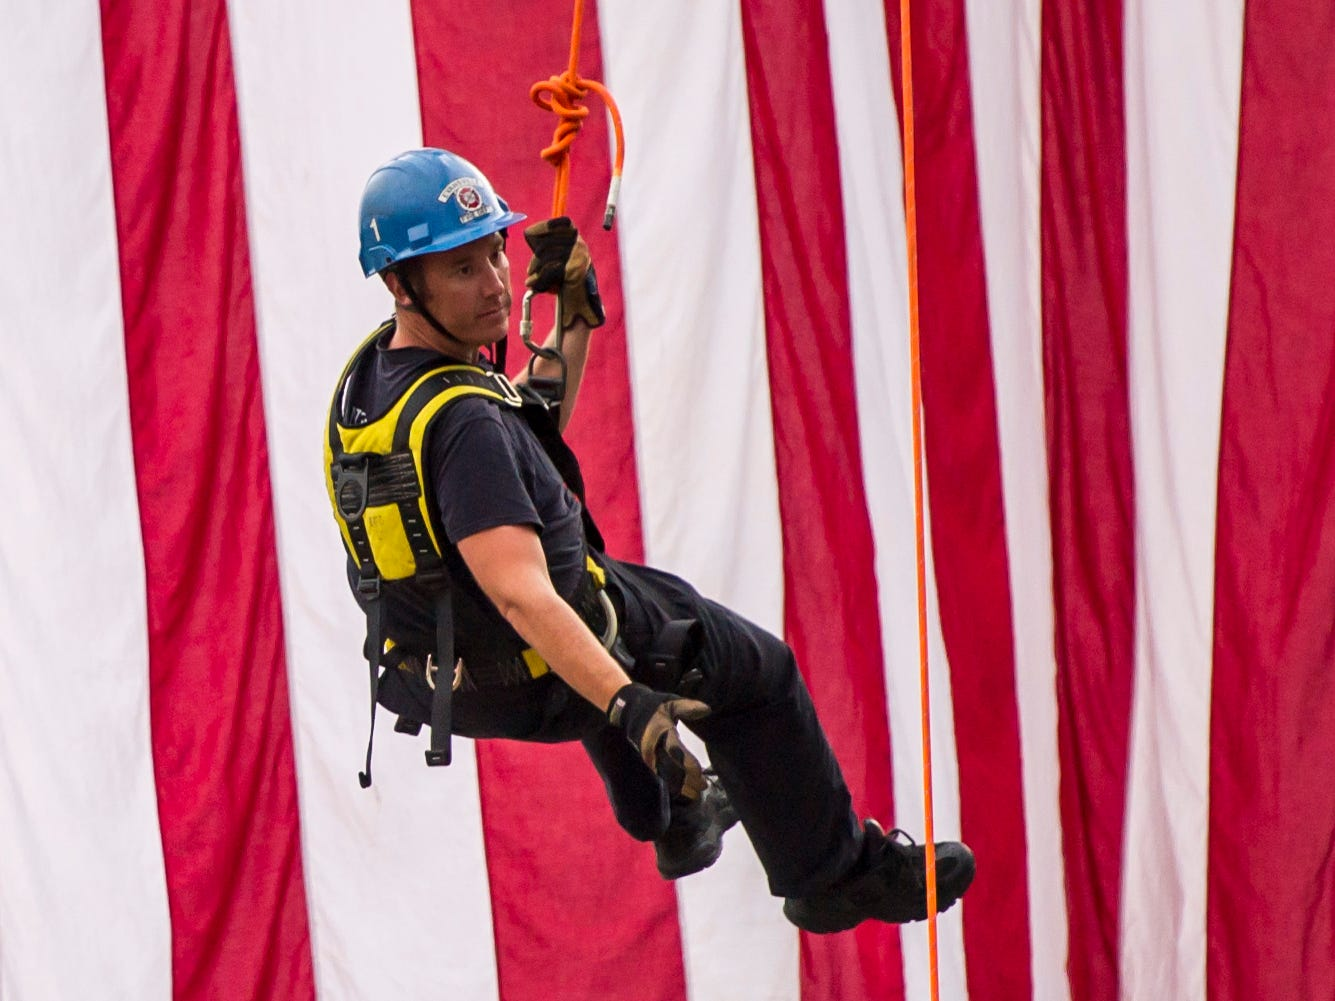 Nick Raber, member of the EFD Rope and Confined Space team, hangs from a ladder truck while the American flag waves behind him during the 35th National Night Out at Wesselman Woods Tuesday, August 7, 2018.